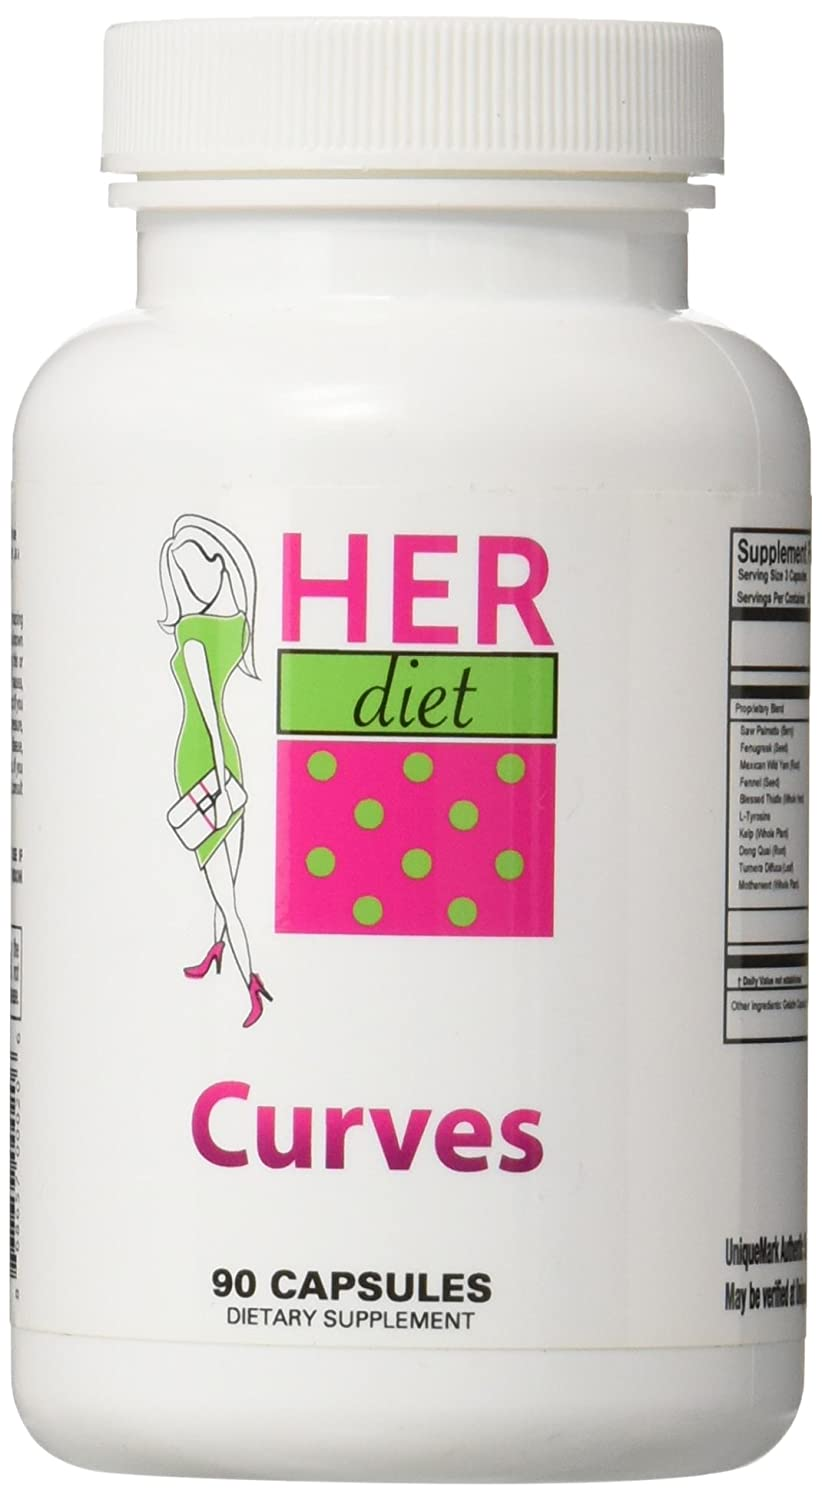 HERdiet Curves for Women Breast Size Enhancement Pills for Fuller Larger Breasts without Surgery. Curves is All Natural and Safe! HER DIET